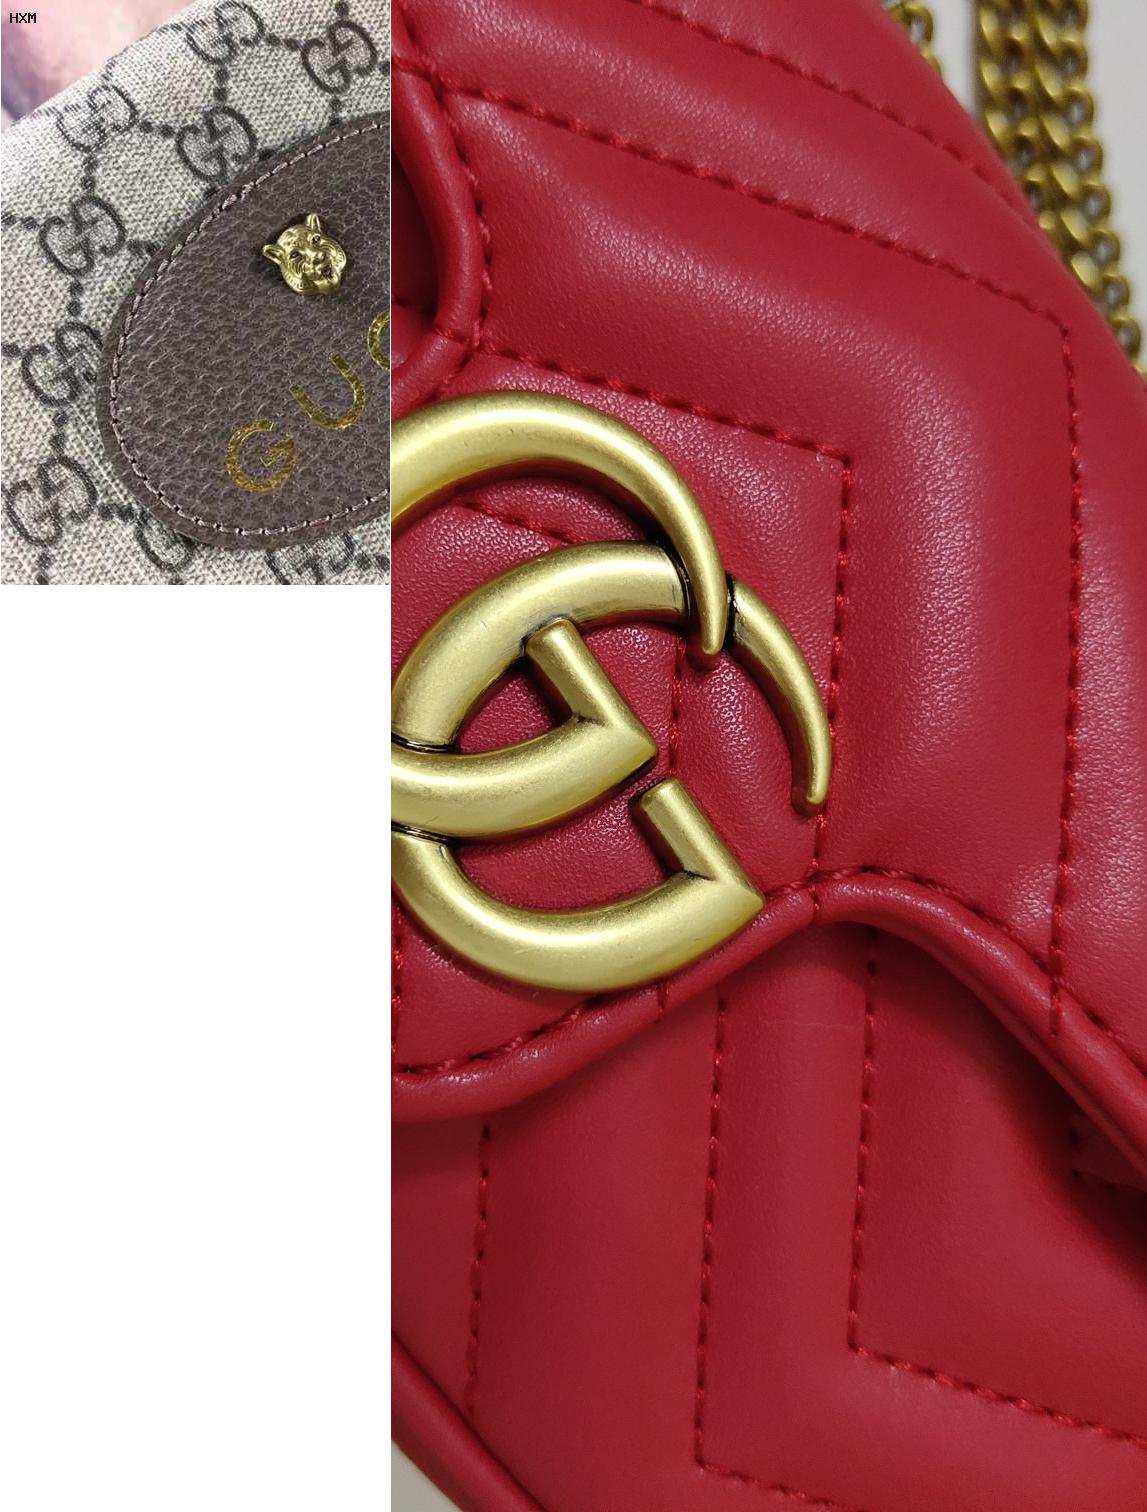 tenis gucci 2020 mujer